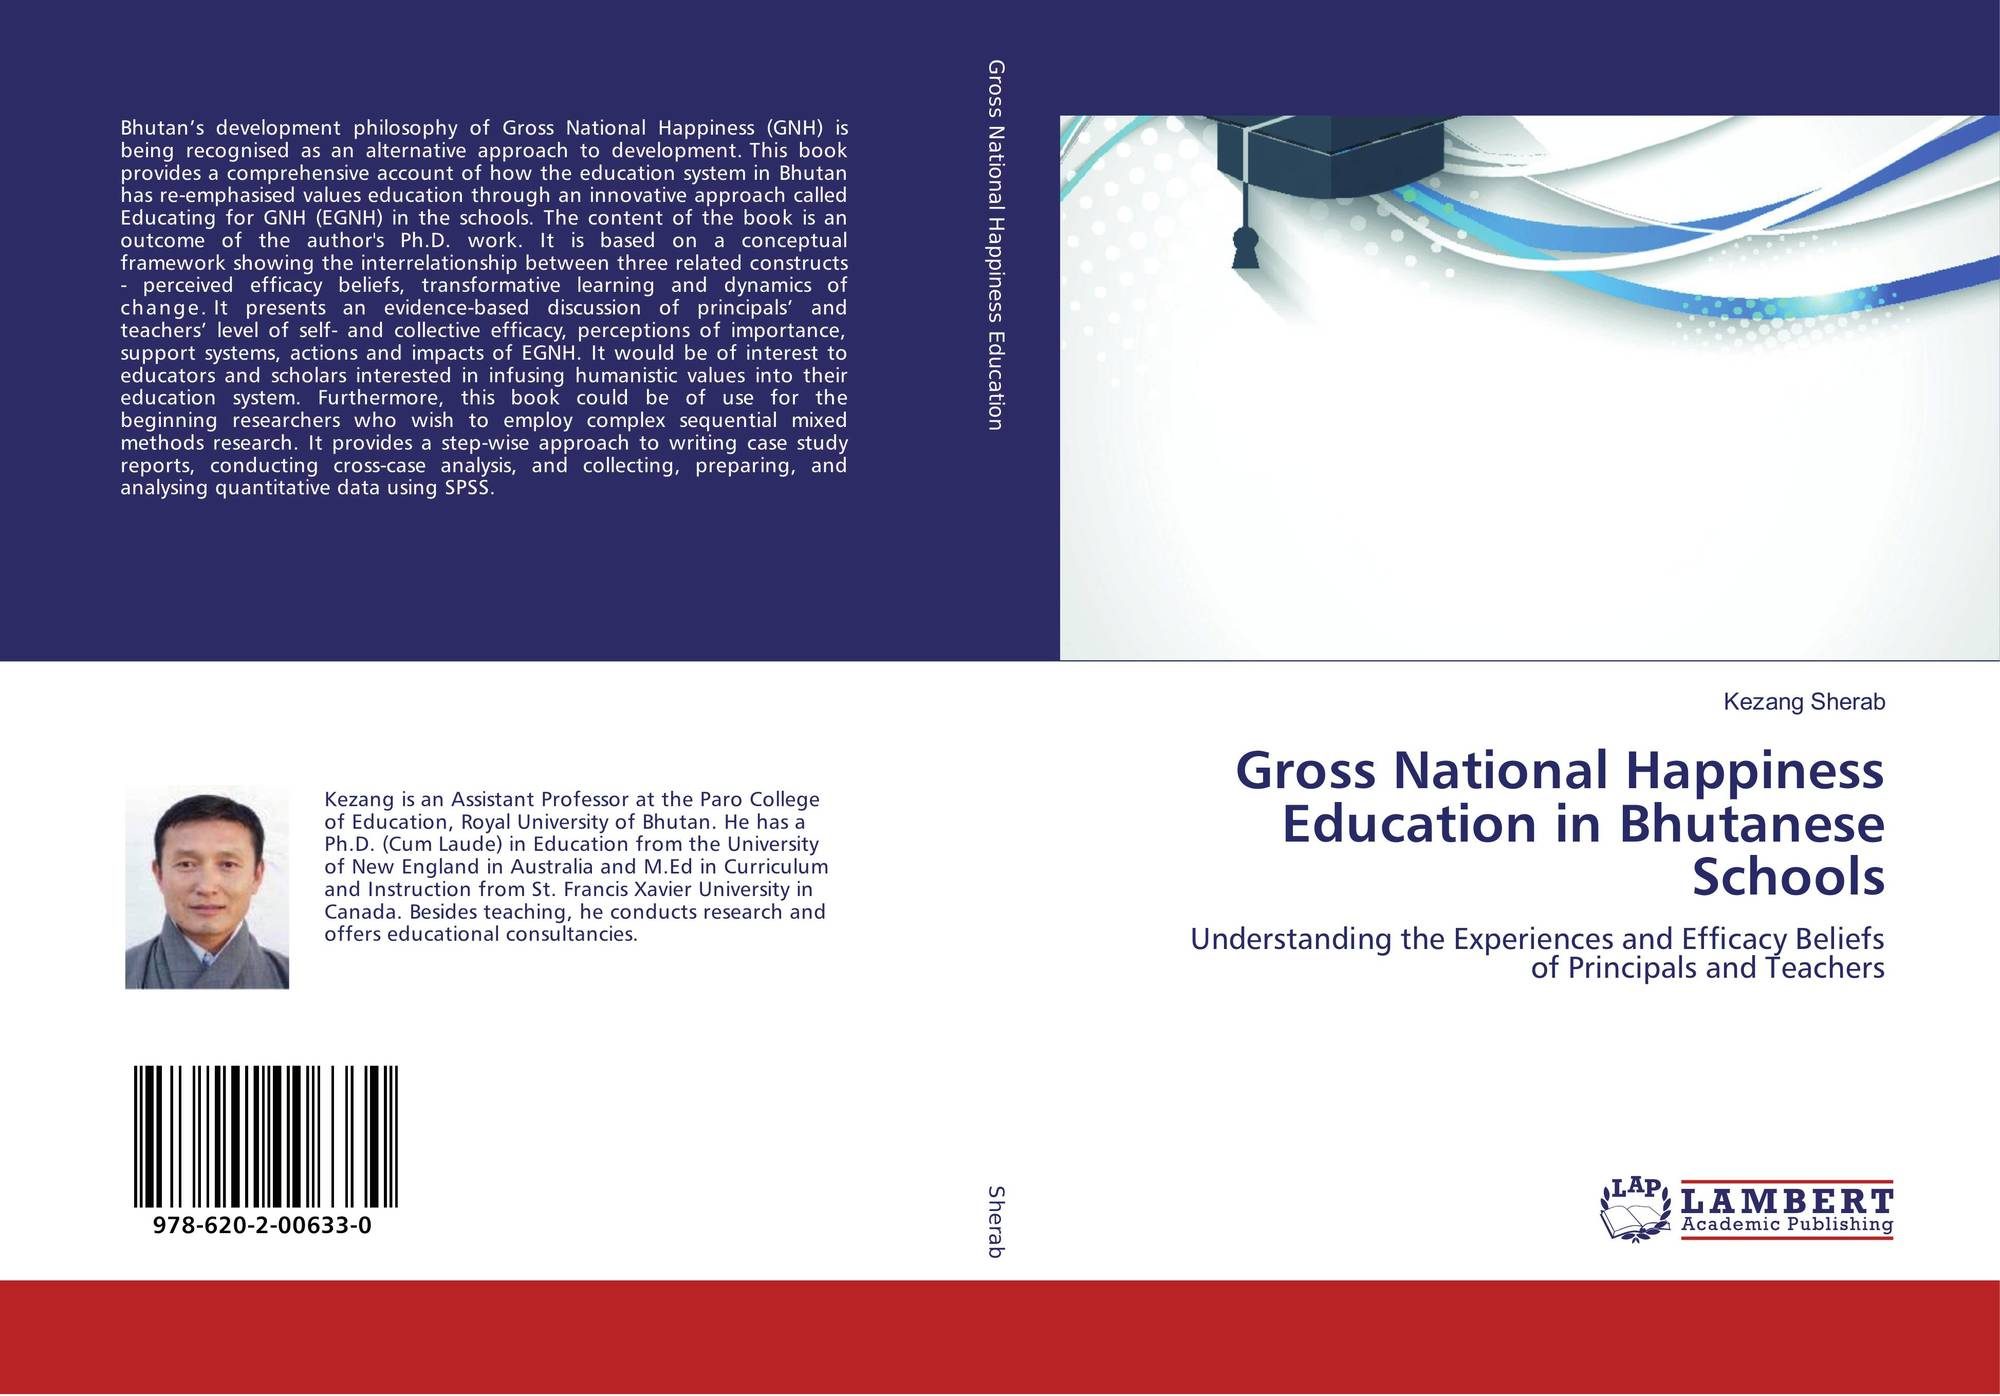 a history of gross national happiness gnh as a developmental philosphy in bhutan The principles of bhutan's gross national happiness system are spelled out for it has championed a new approach to development it is a philosophy for life.